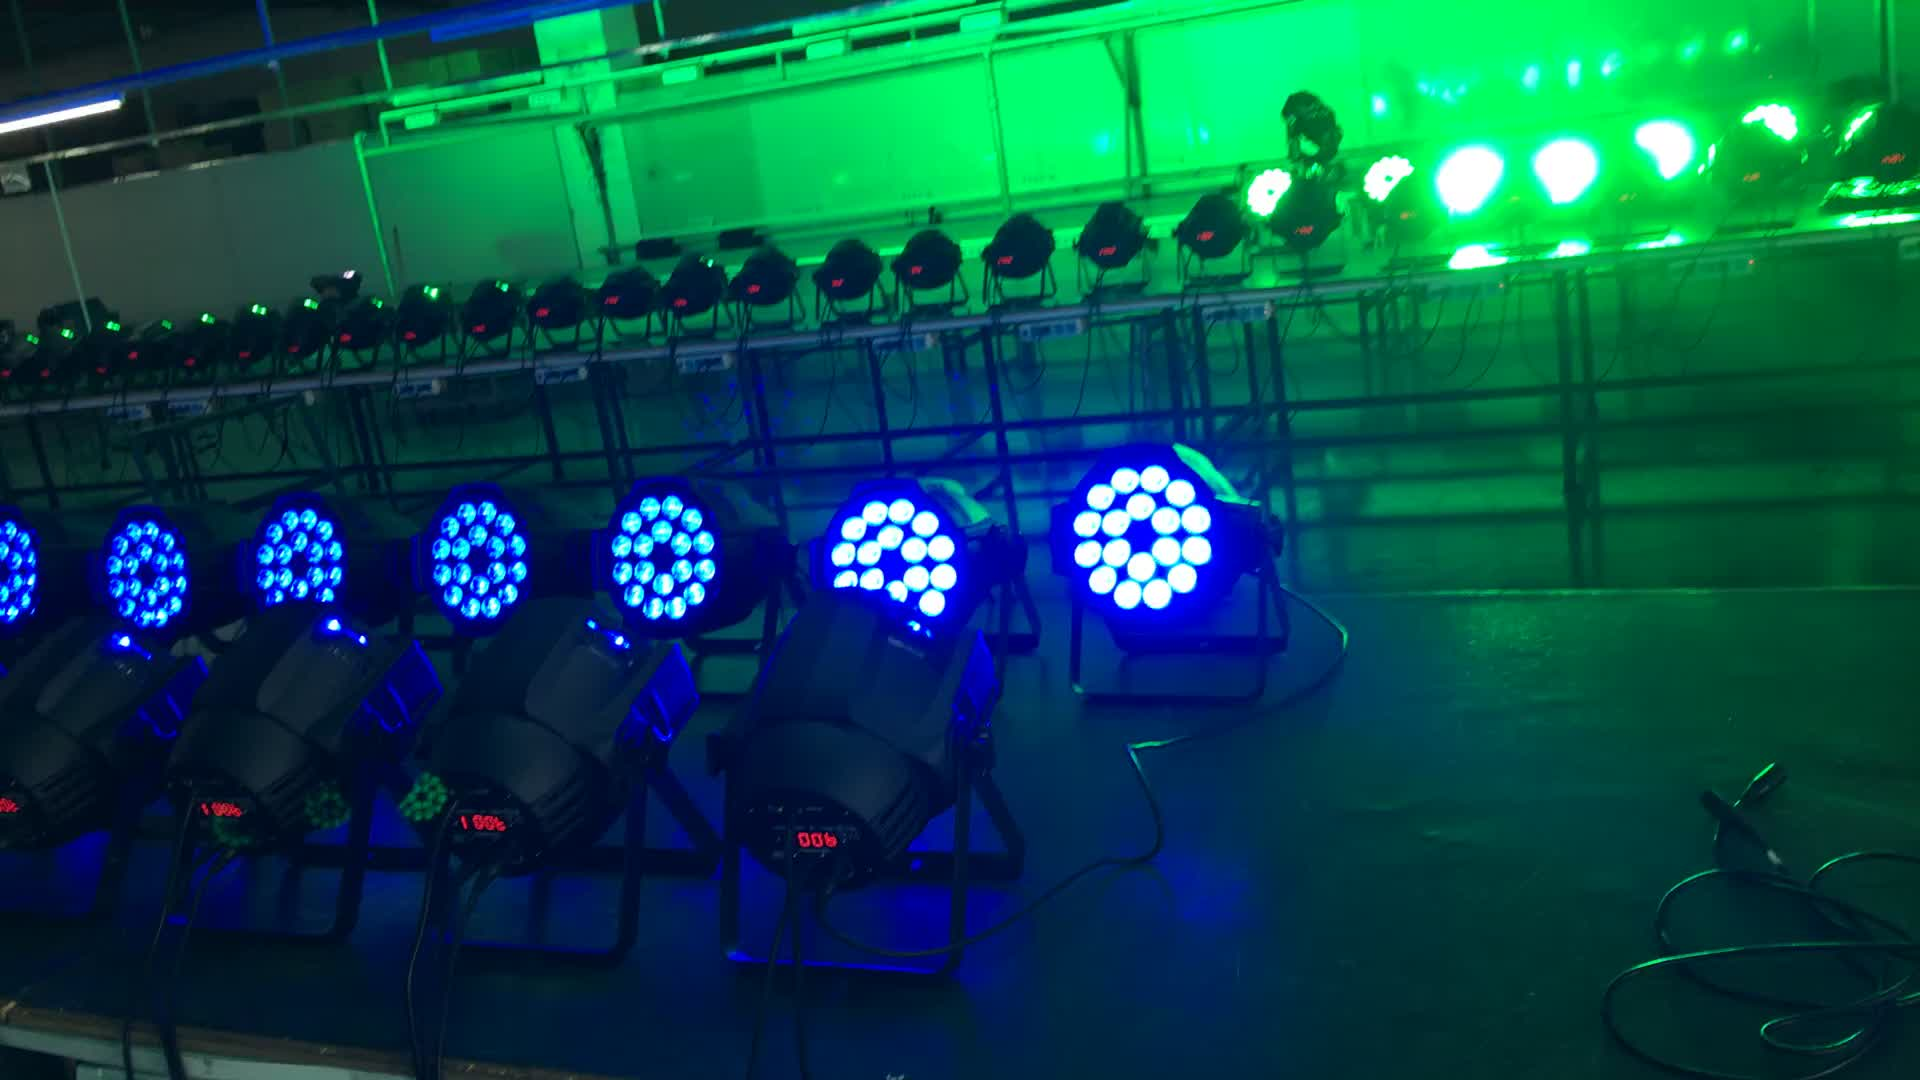 Hot selling 18 x 18w 6in1 RGBWAUV LED stage light price